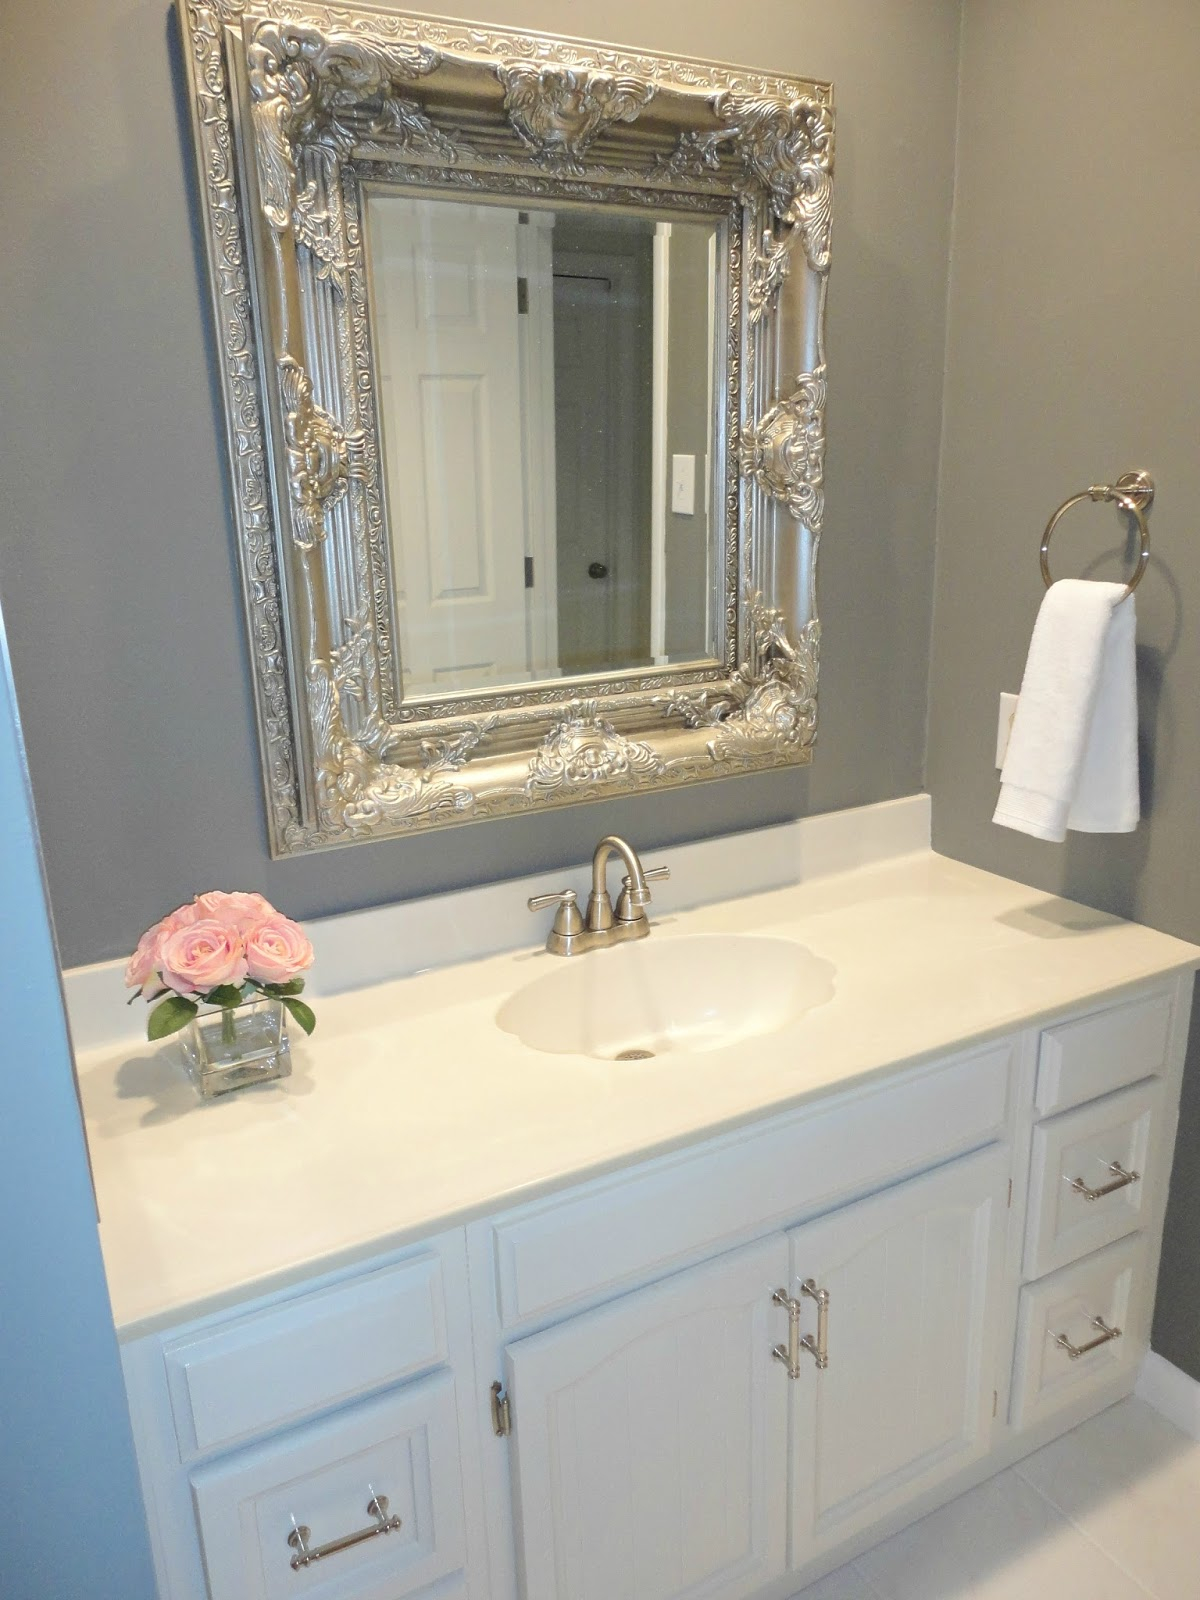 Fancy Diy Bathroom Remodeling Add Diy Bathroom Remodel Cost Add Diy inside Bathroom Remodel Diy